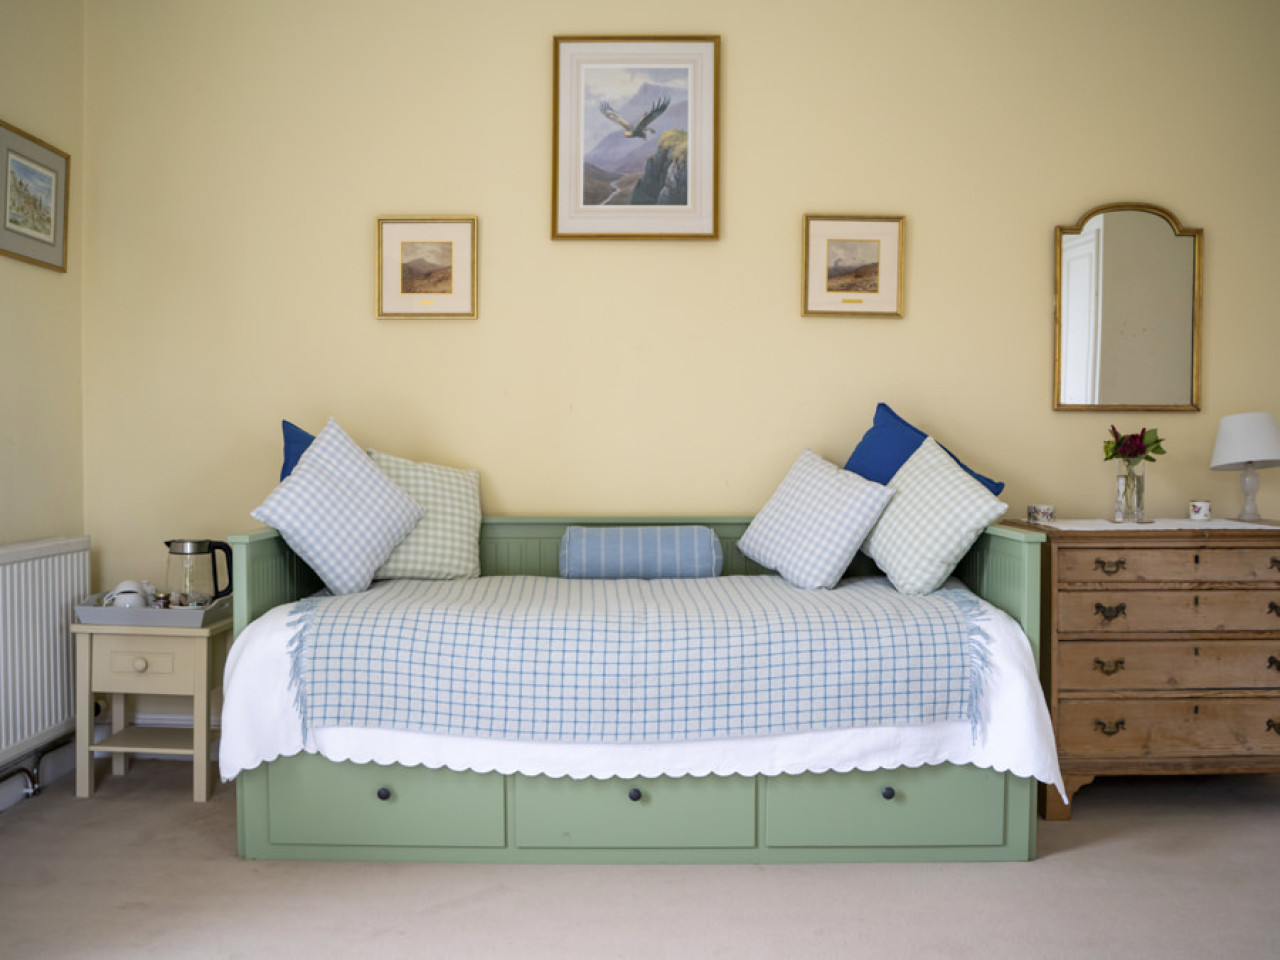 The Reed View - day bed